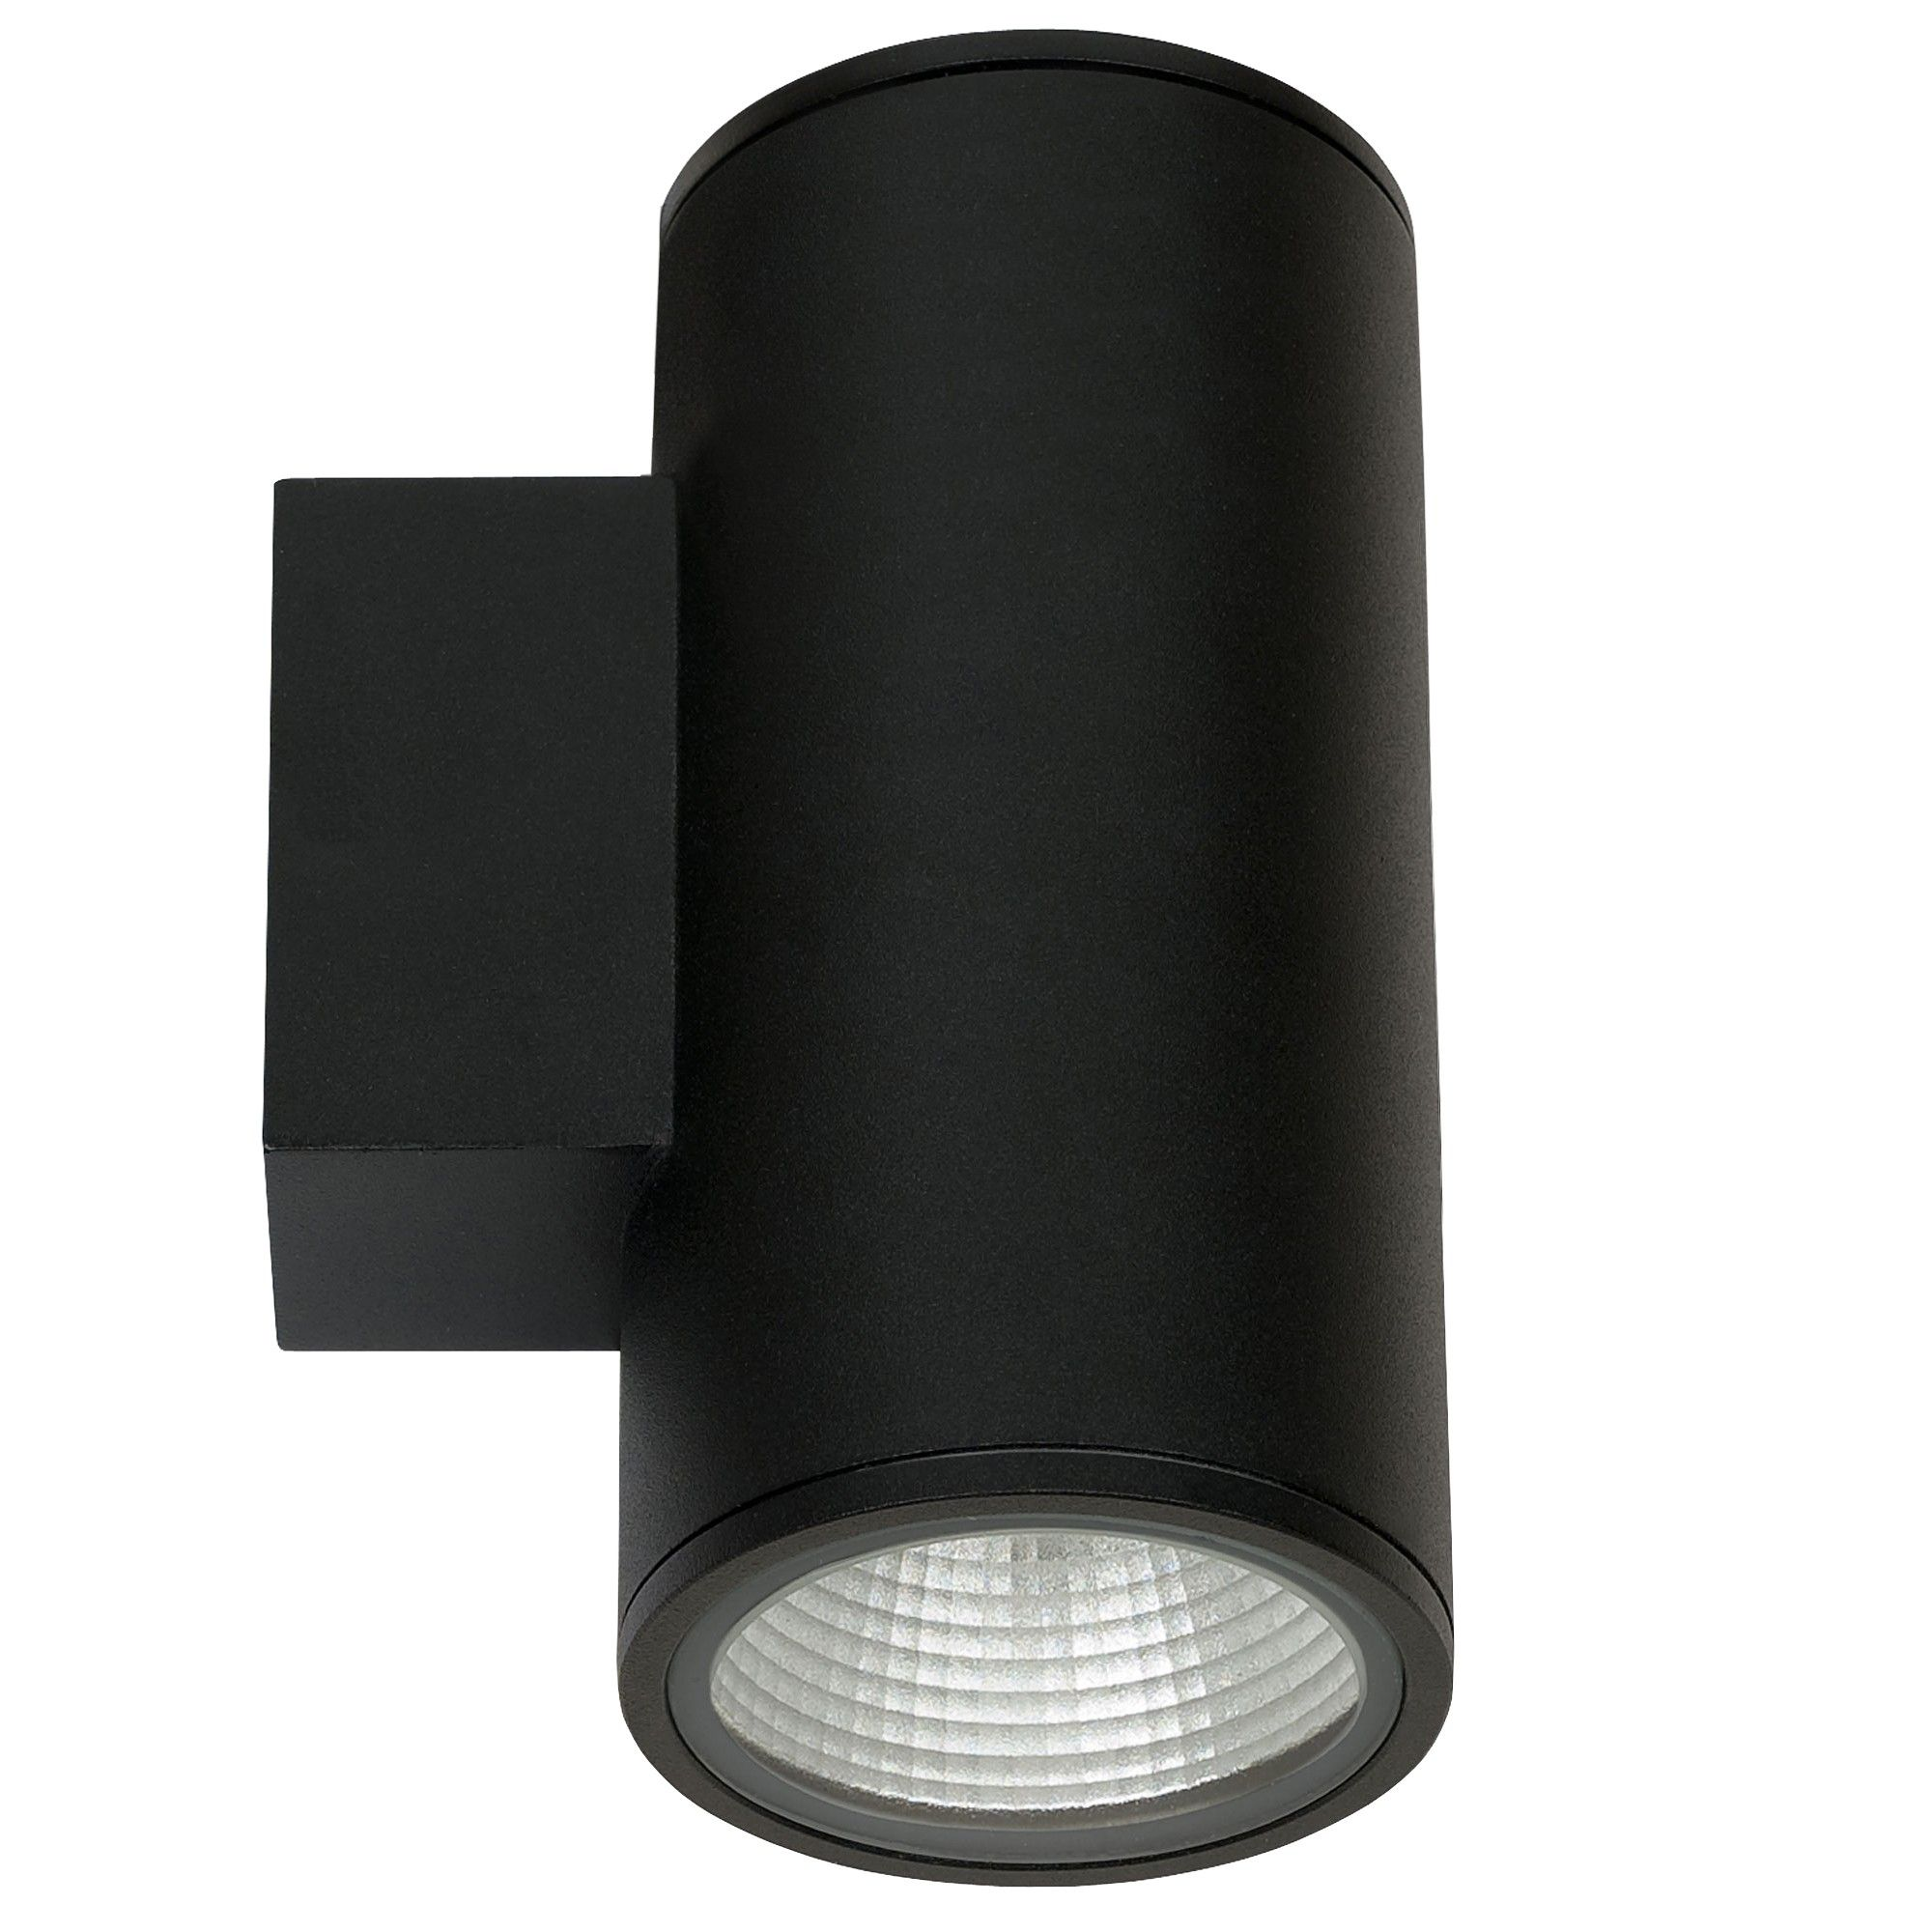 alcon lighting 11226 4 2d pavo architectural led 4 inch round cylinder 2 direction wall mount light fixture